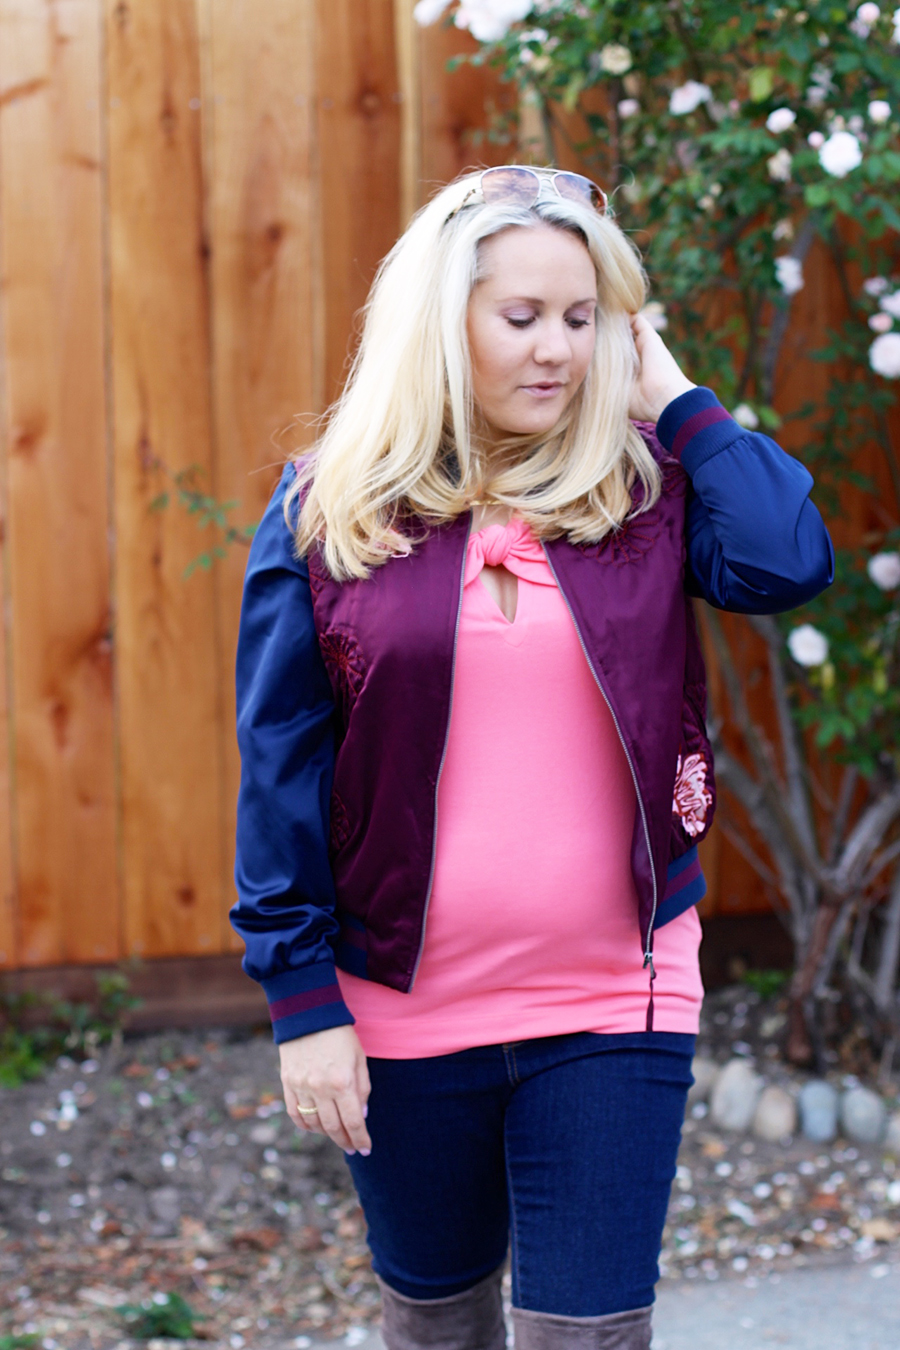 simon-premium-outlets-breast-cancer-awareness-month-susan-g-komen-outfit-inspiration-9